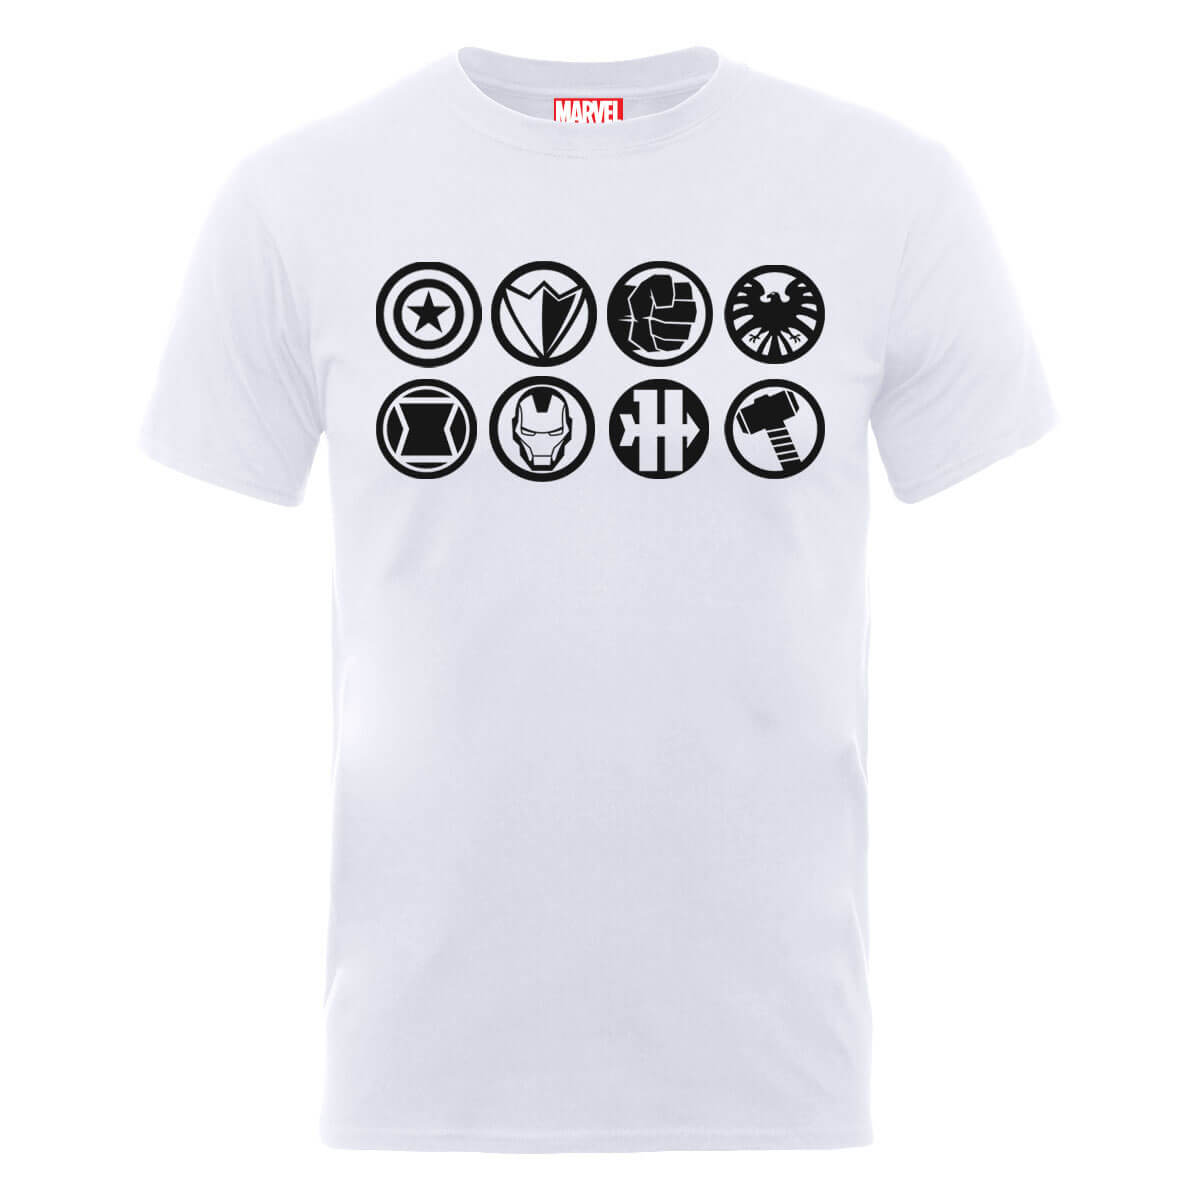 Marvel Avengers Assemble Team Icons T-Shirt - White